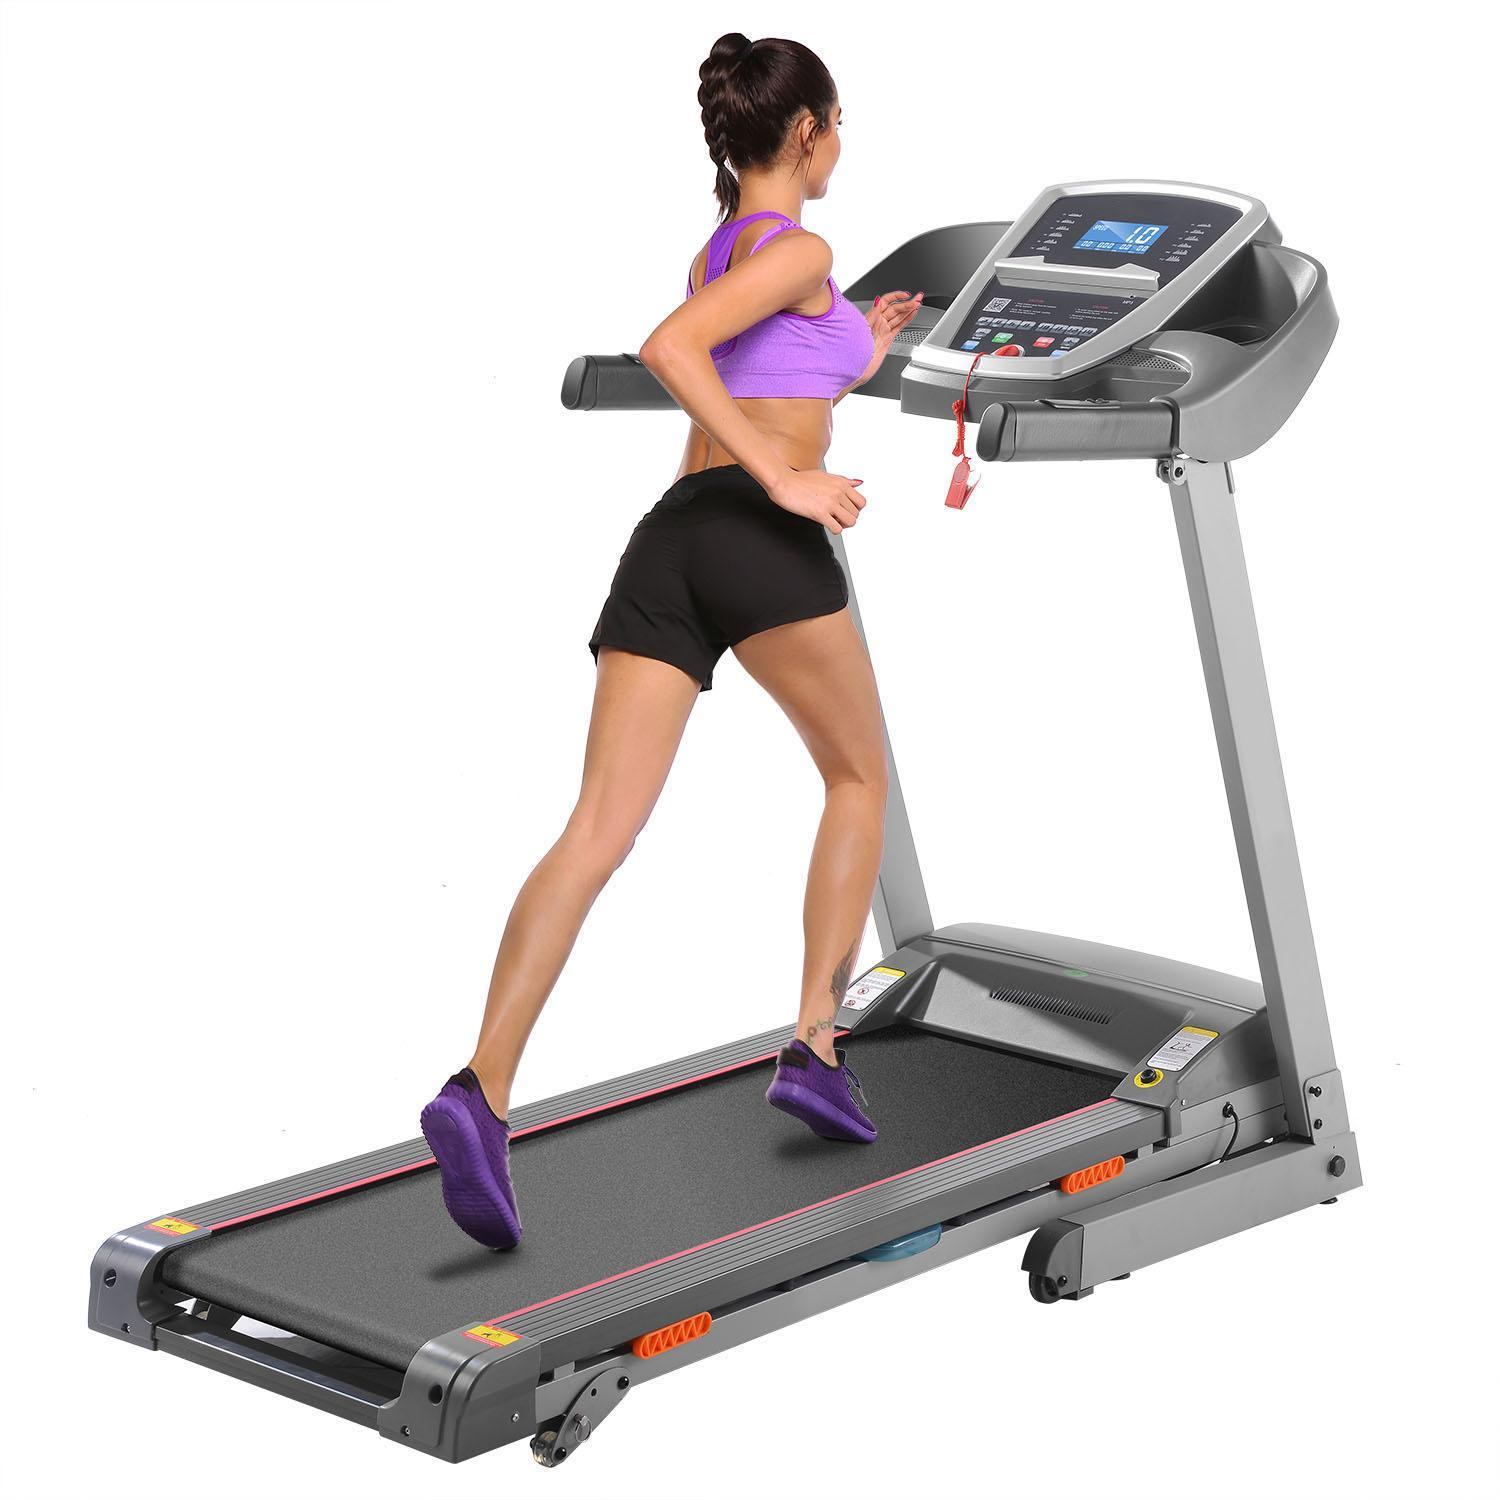 Kimimart Electric Treadmill with Incline - APP Control Tw...